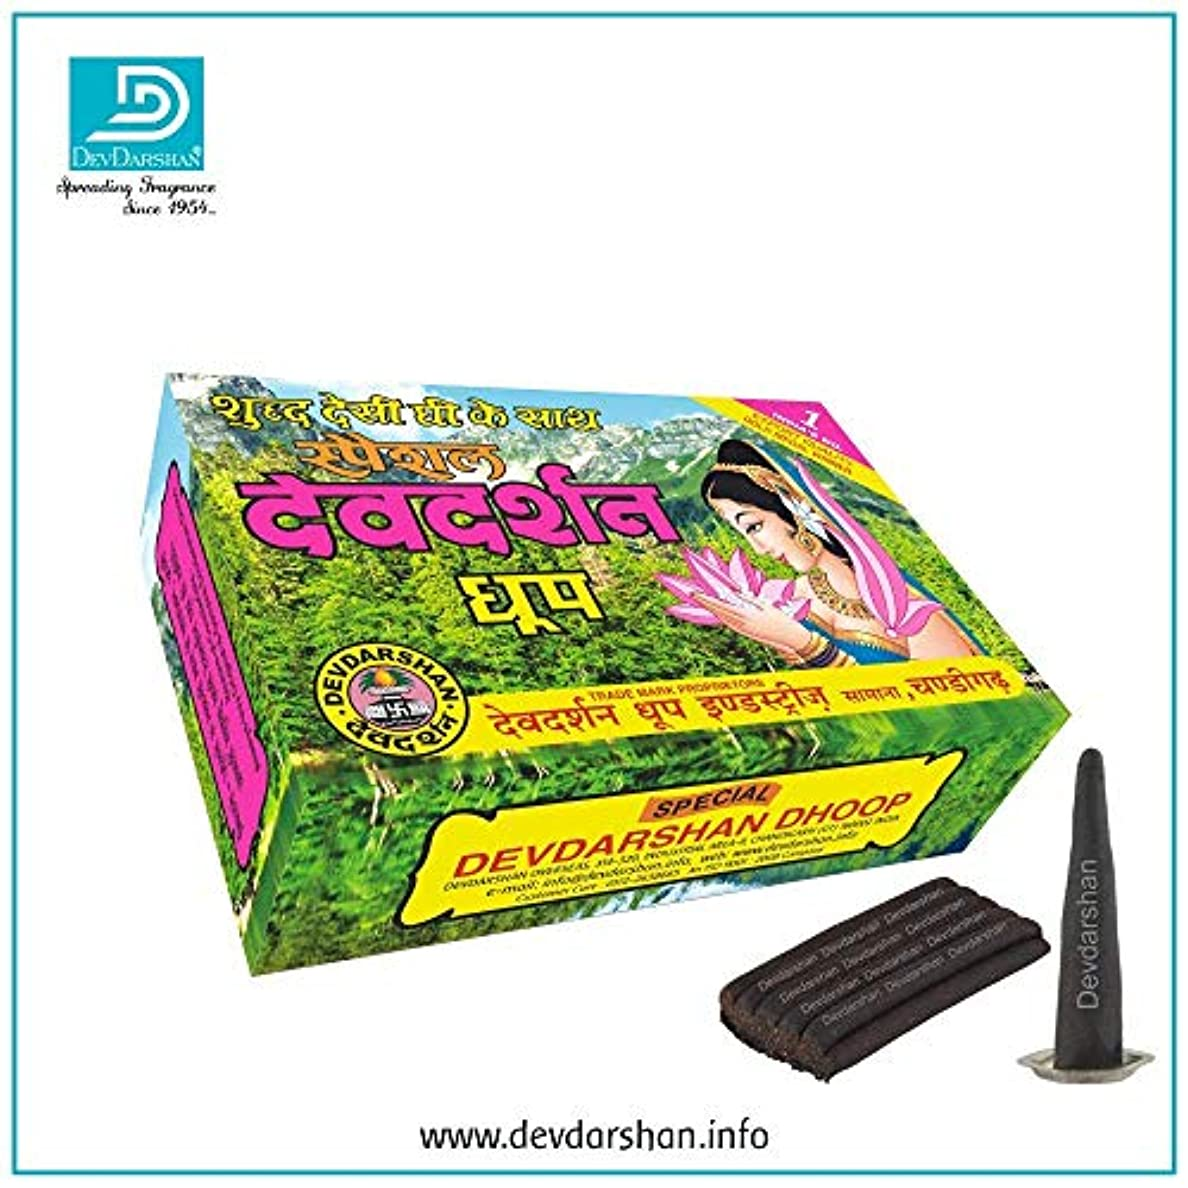 仮説正直回復Devdarshan Special Dhoop Large, 50g in Each Unit (Pack of 12 Units)